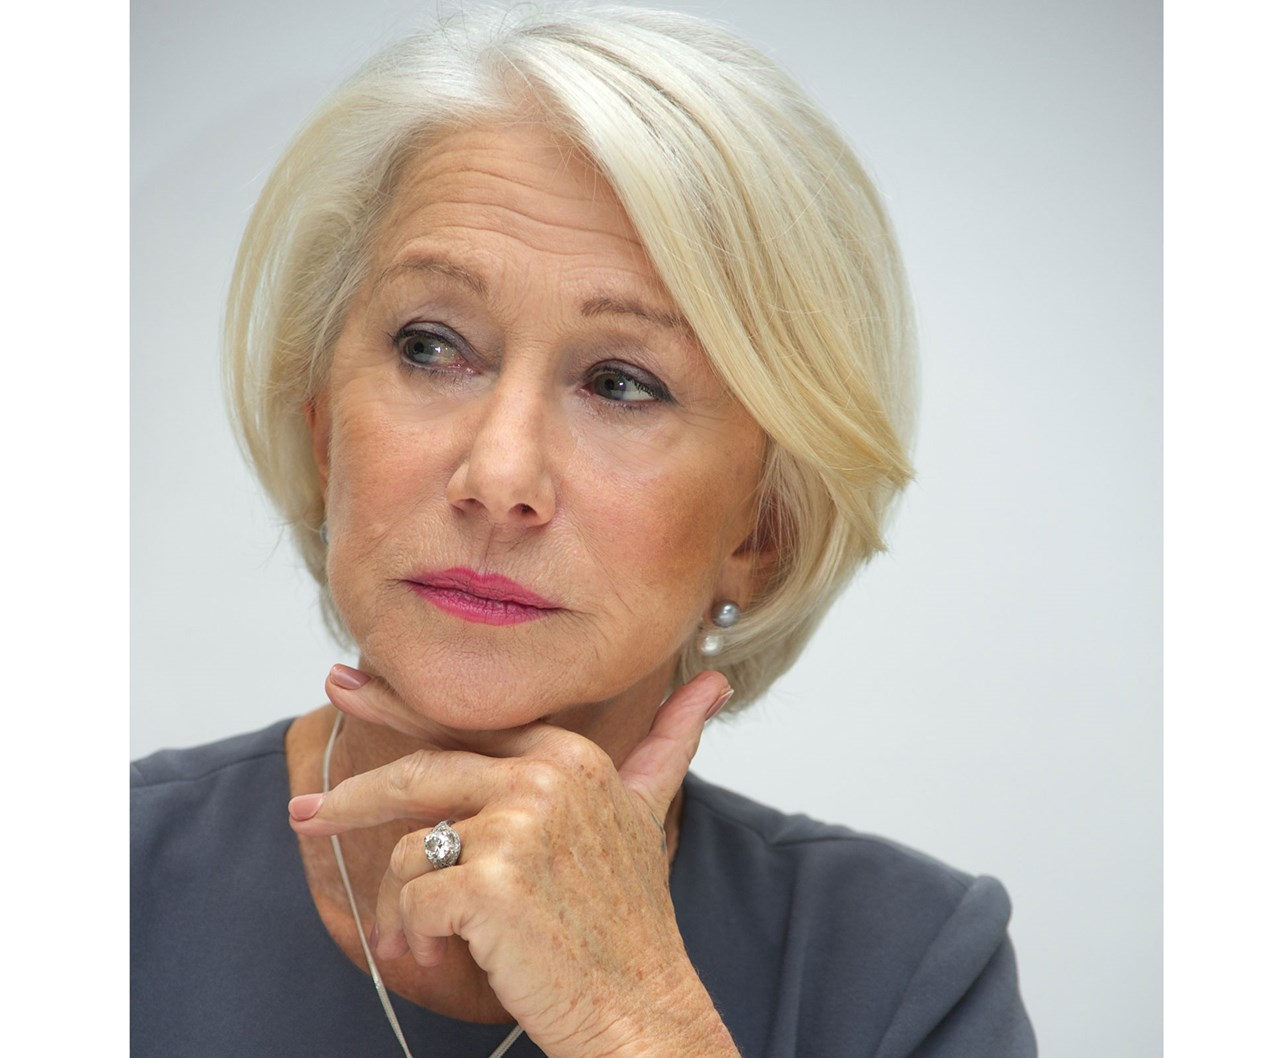 5 life lessons from Dame Helen Mirren